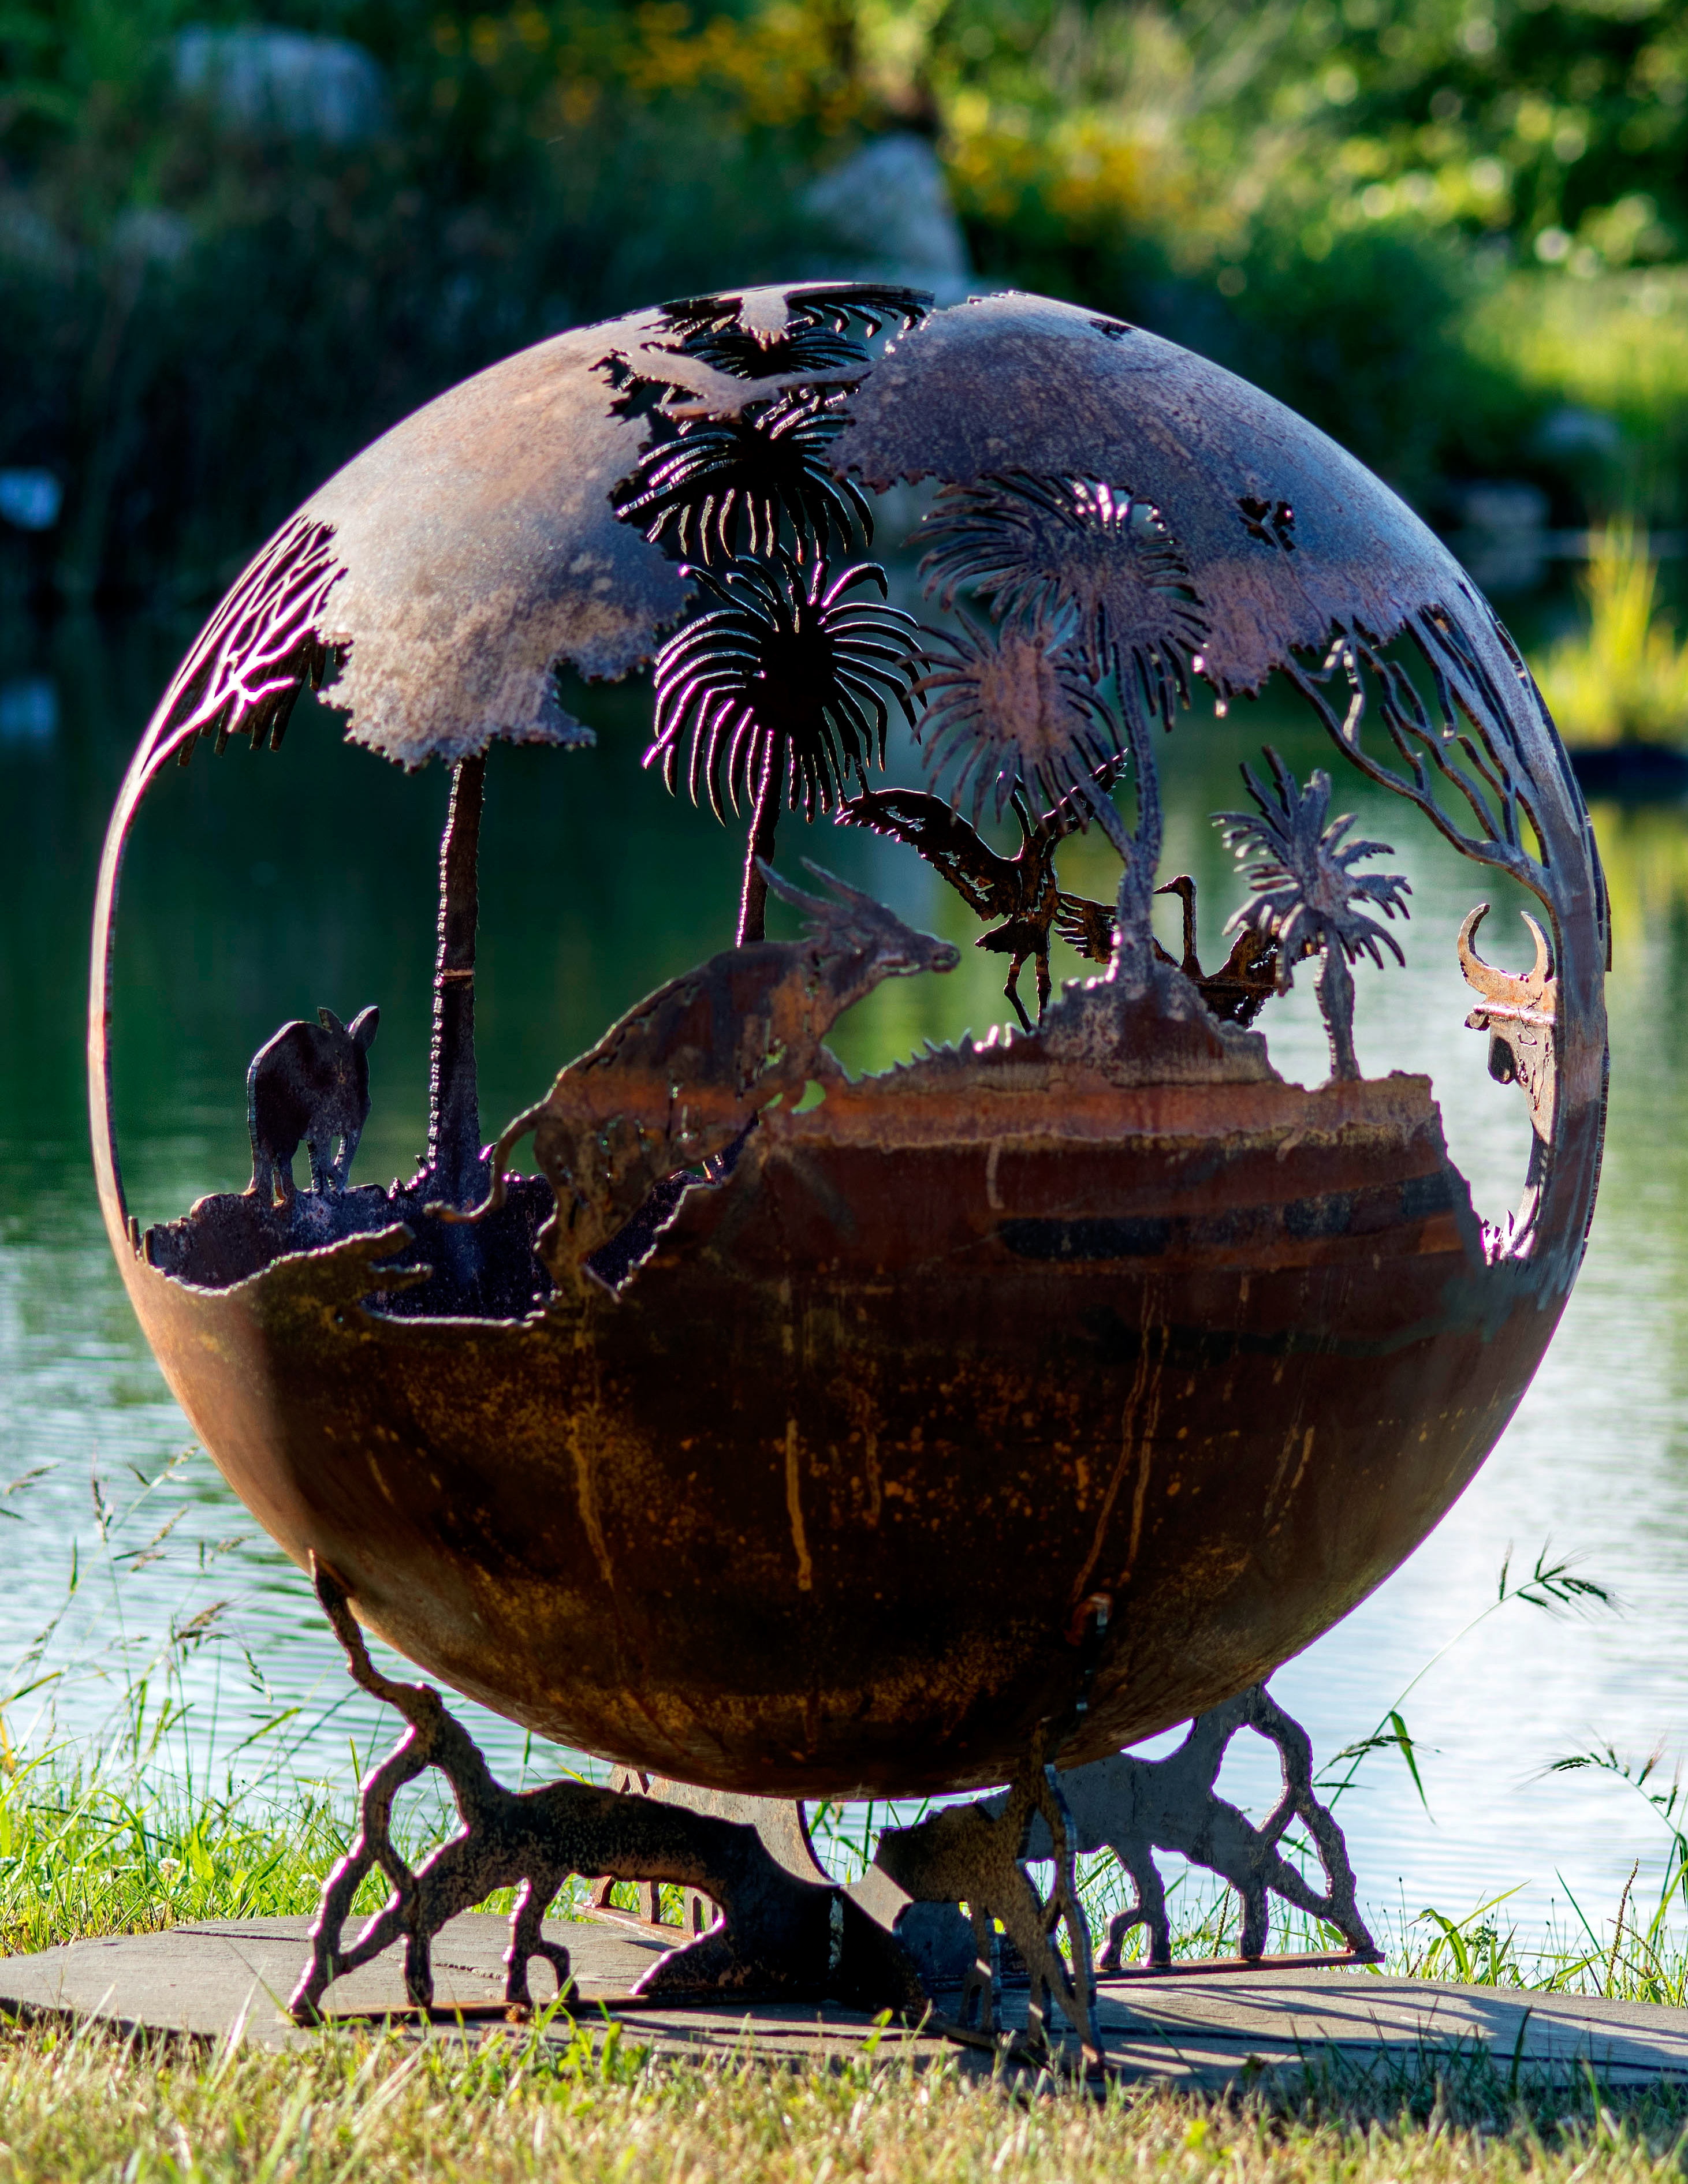 Outback Australia Fire Pit Sphere The Fire Pit Gallery